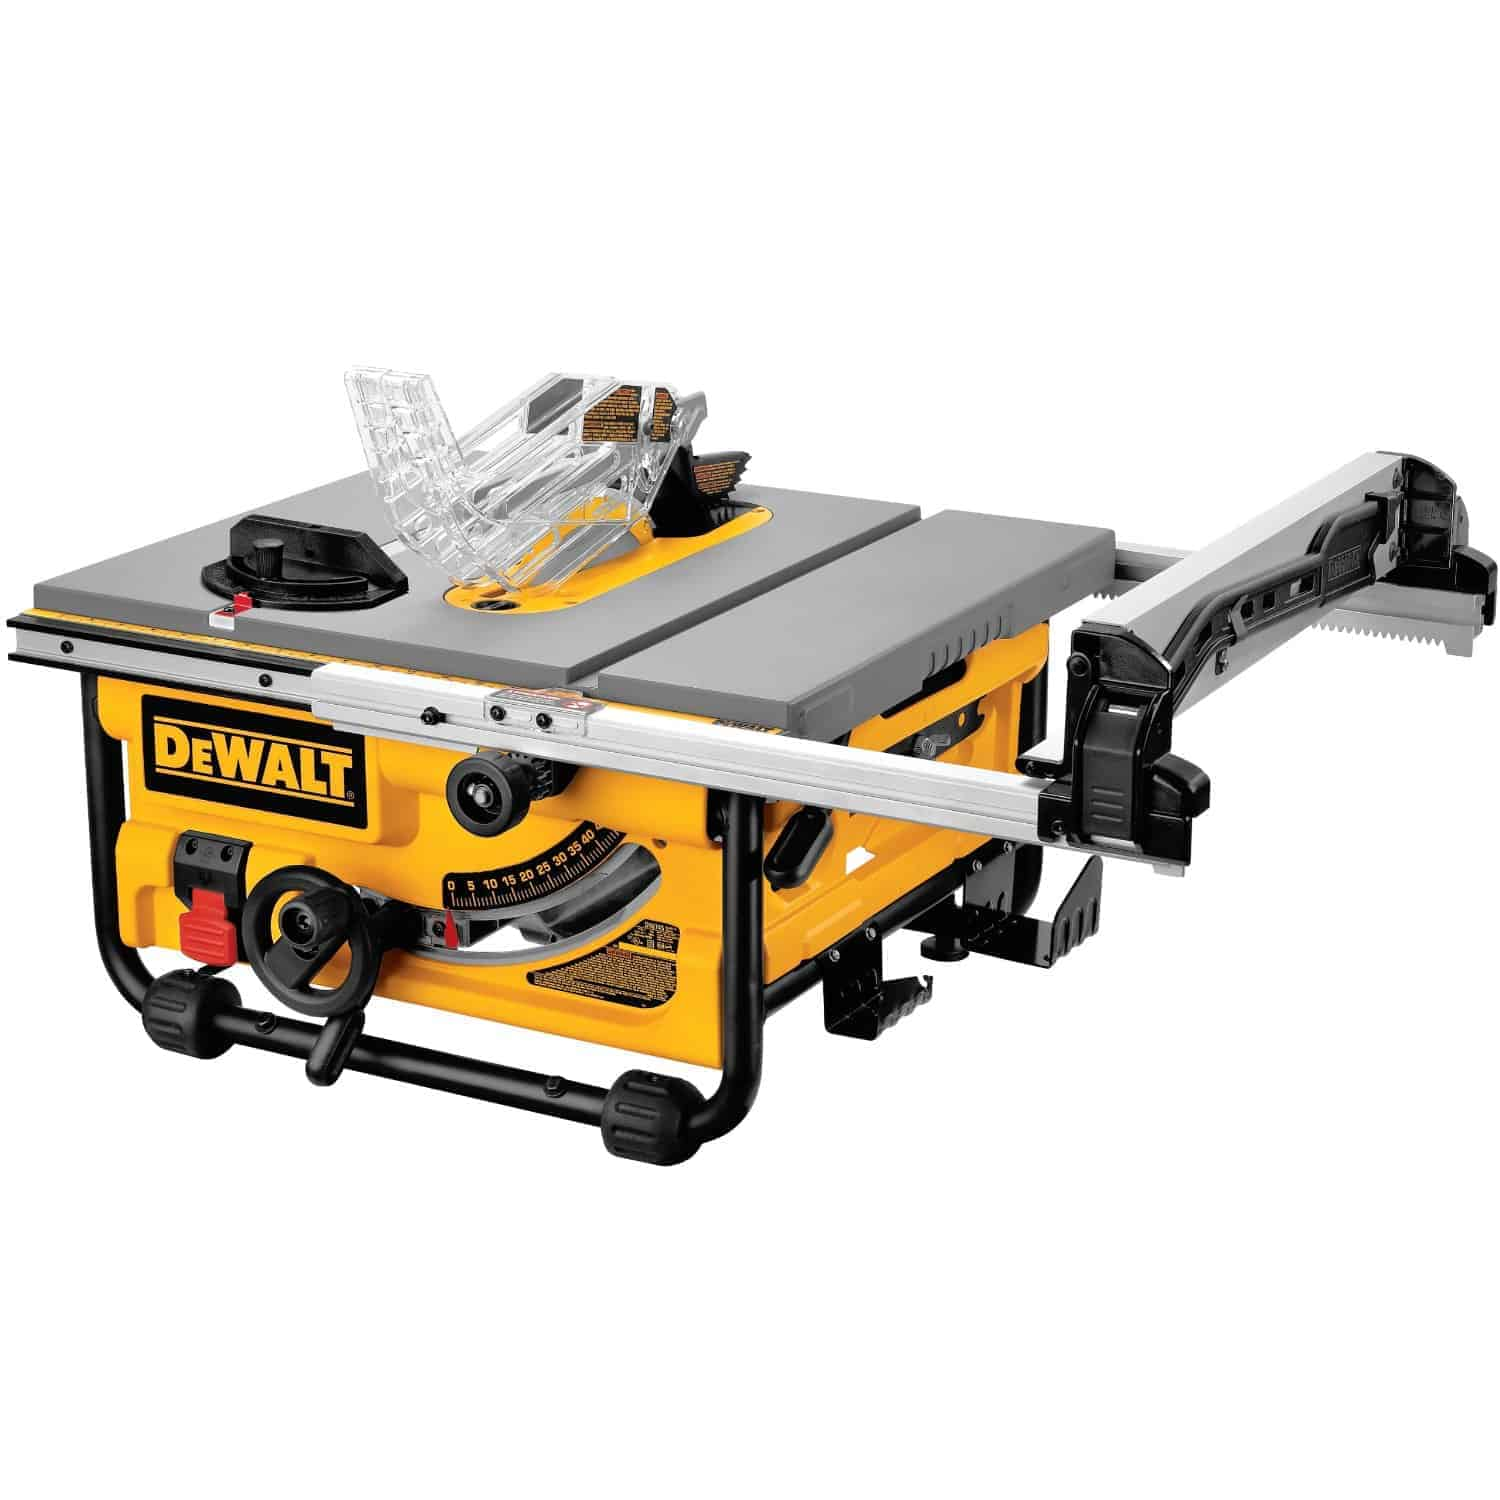 Table Saw Buying Guide - Benchtop, Contractor, Hybrid, etc.